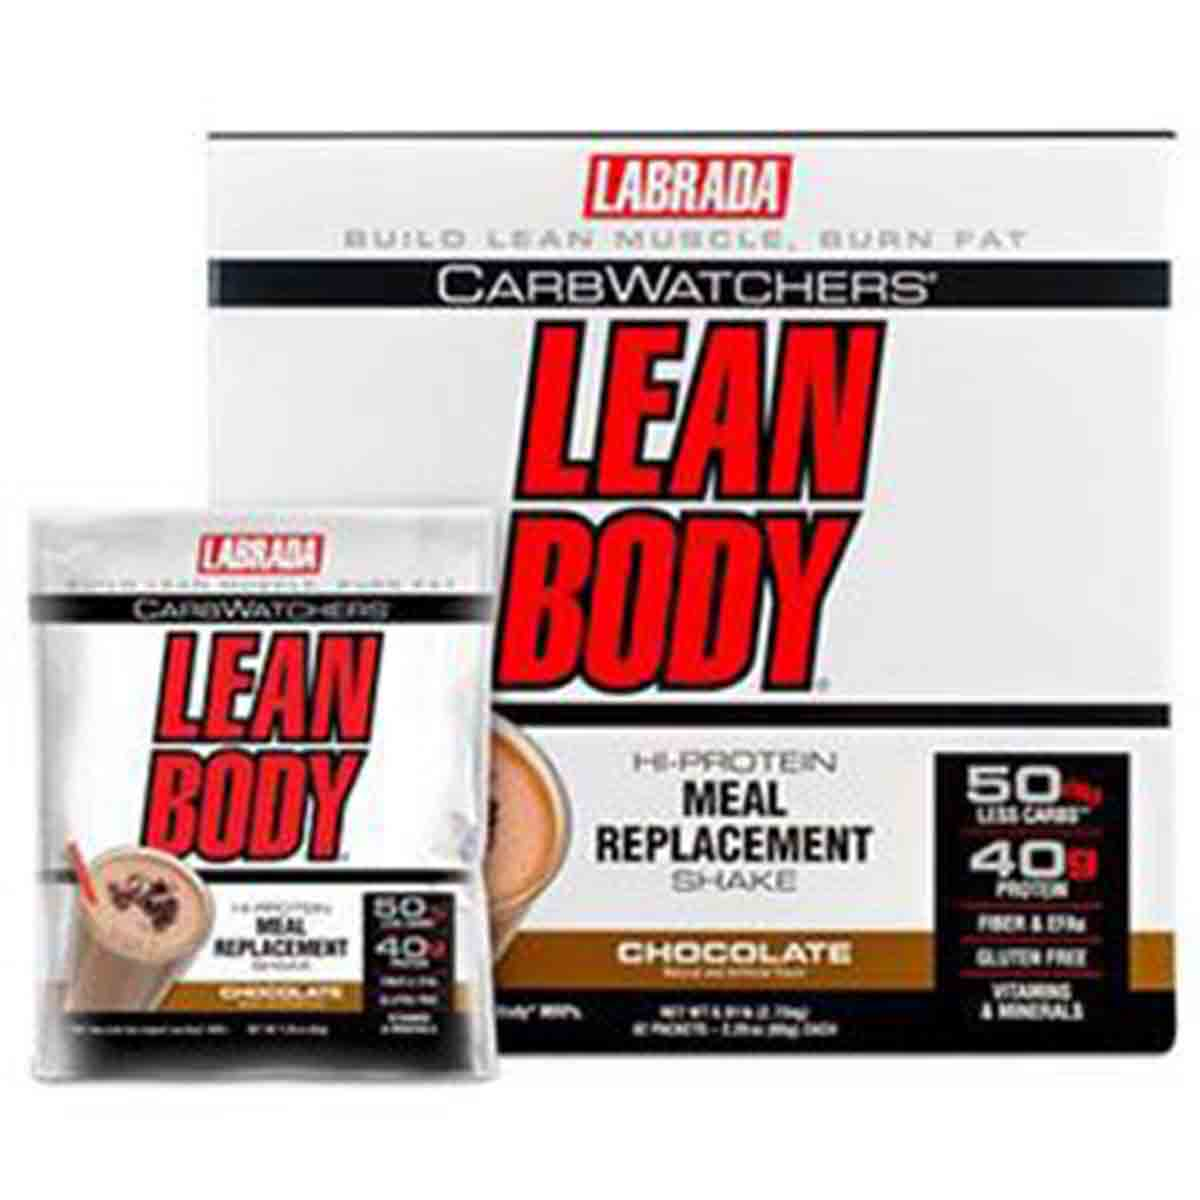 Lean Body CarbWatchers Hi-Protein Meal Replacement Shake